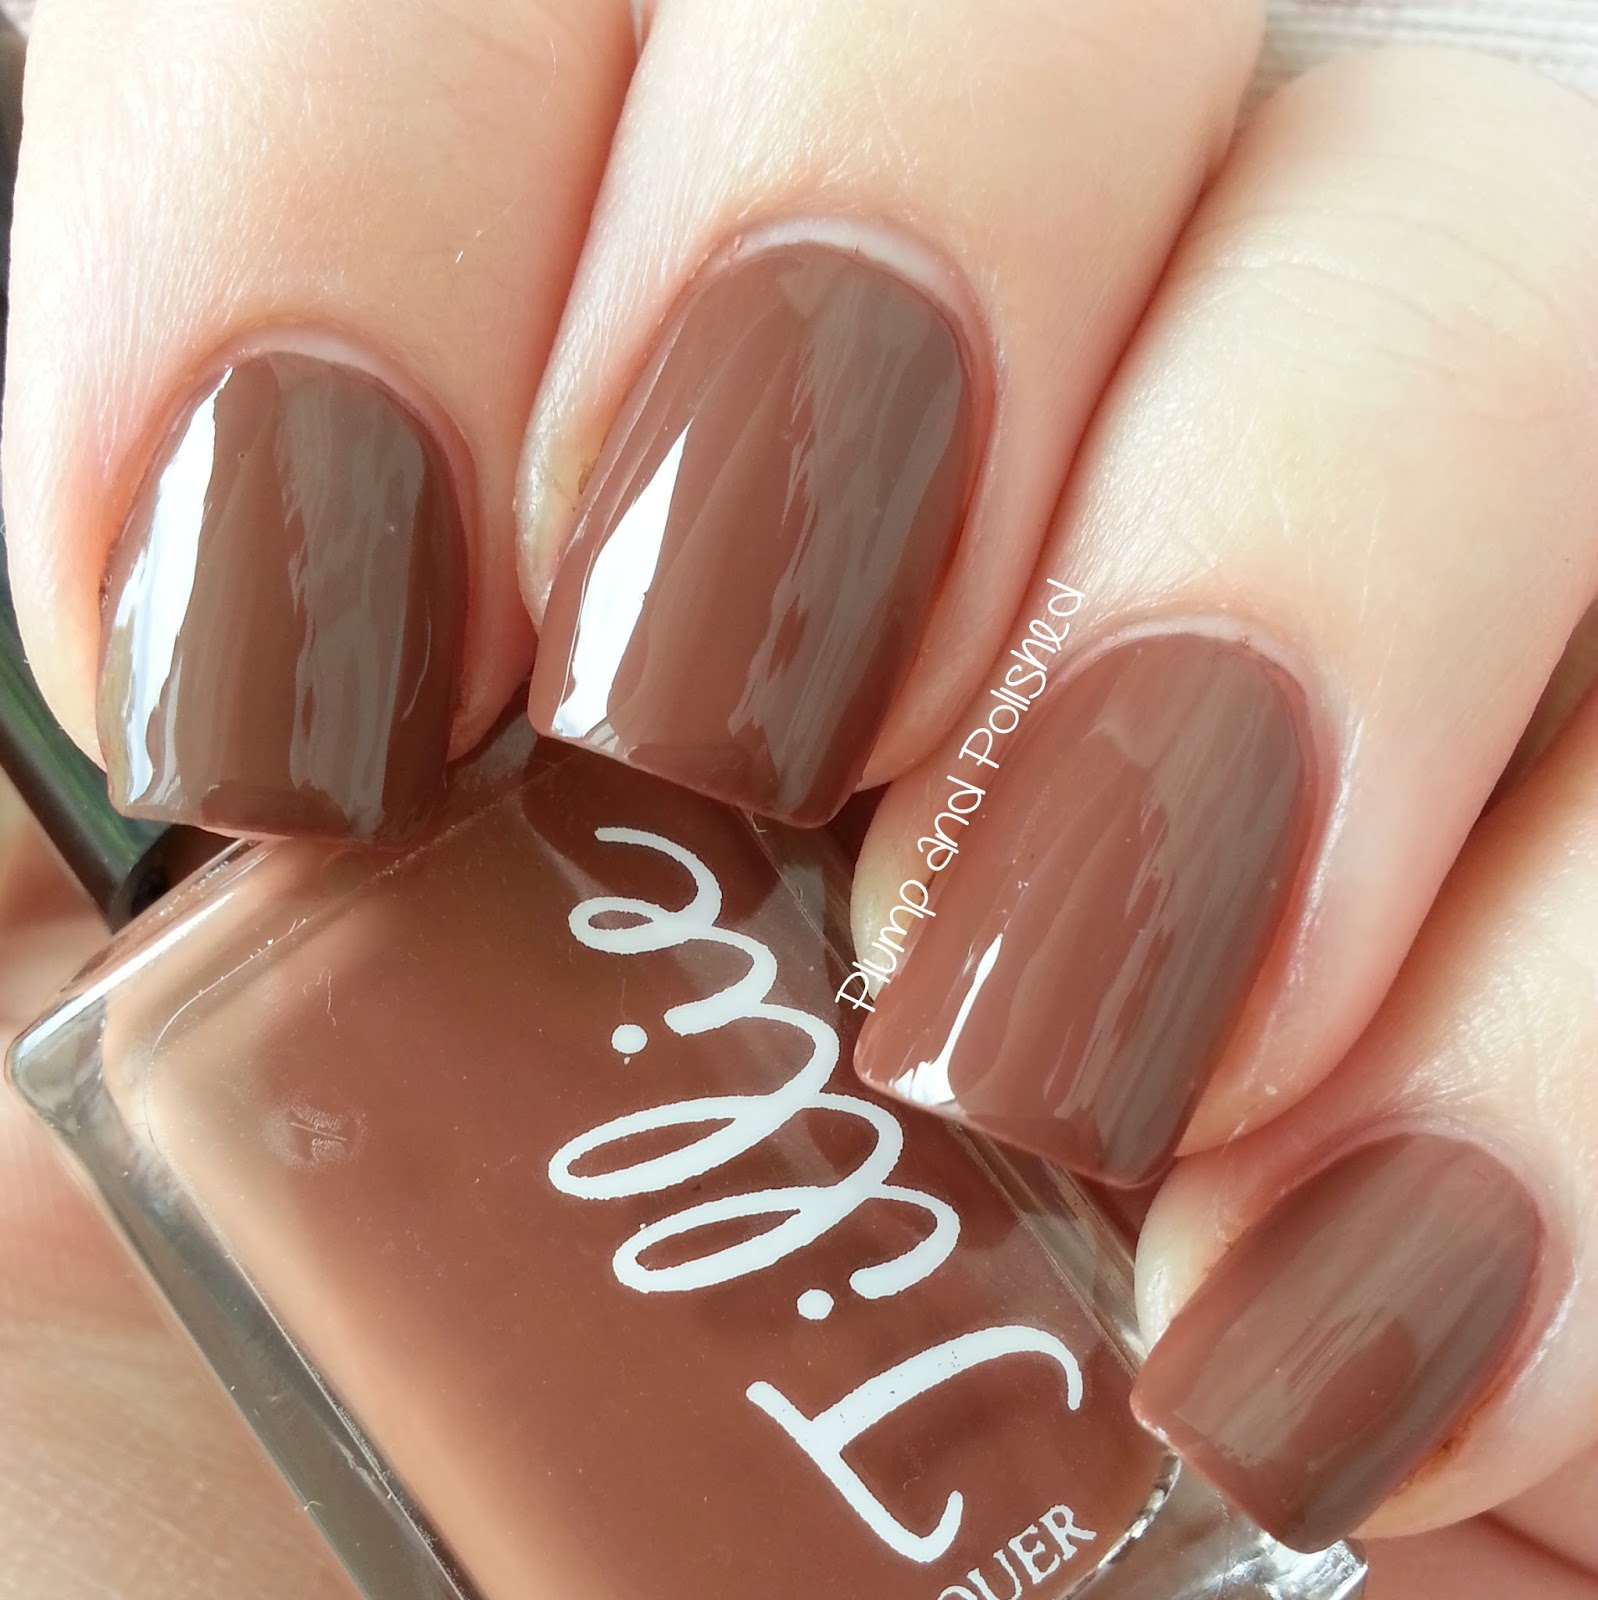 Plump and Polished: Tillie Polish - Falling Collection